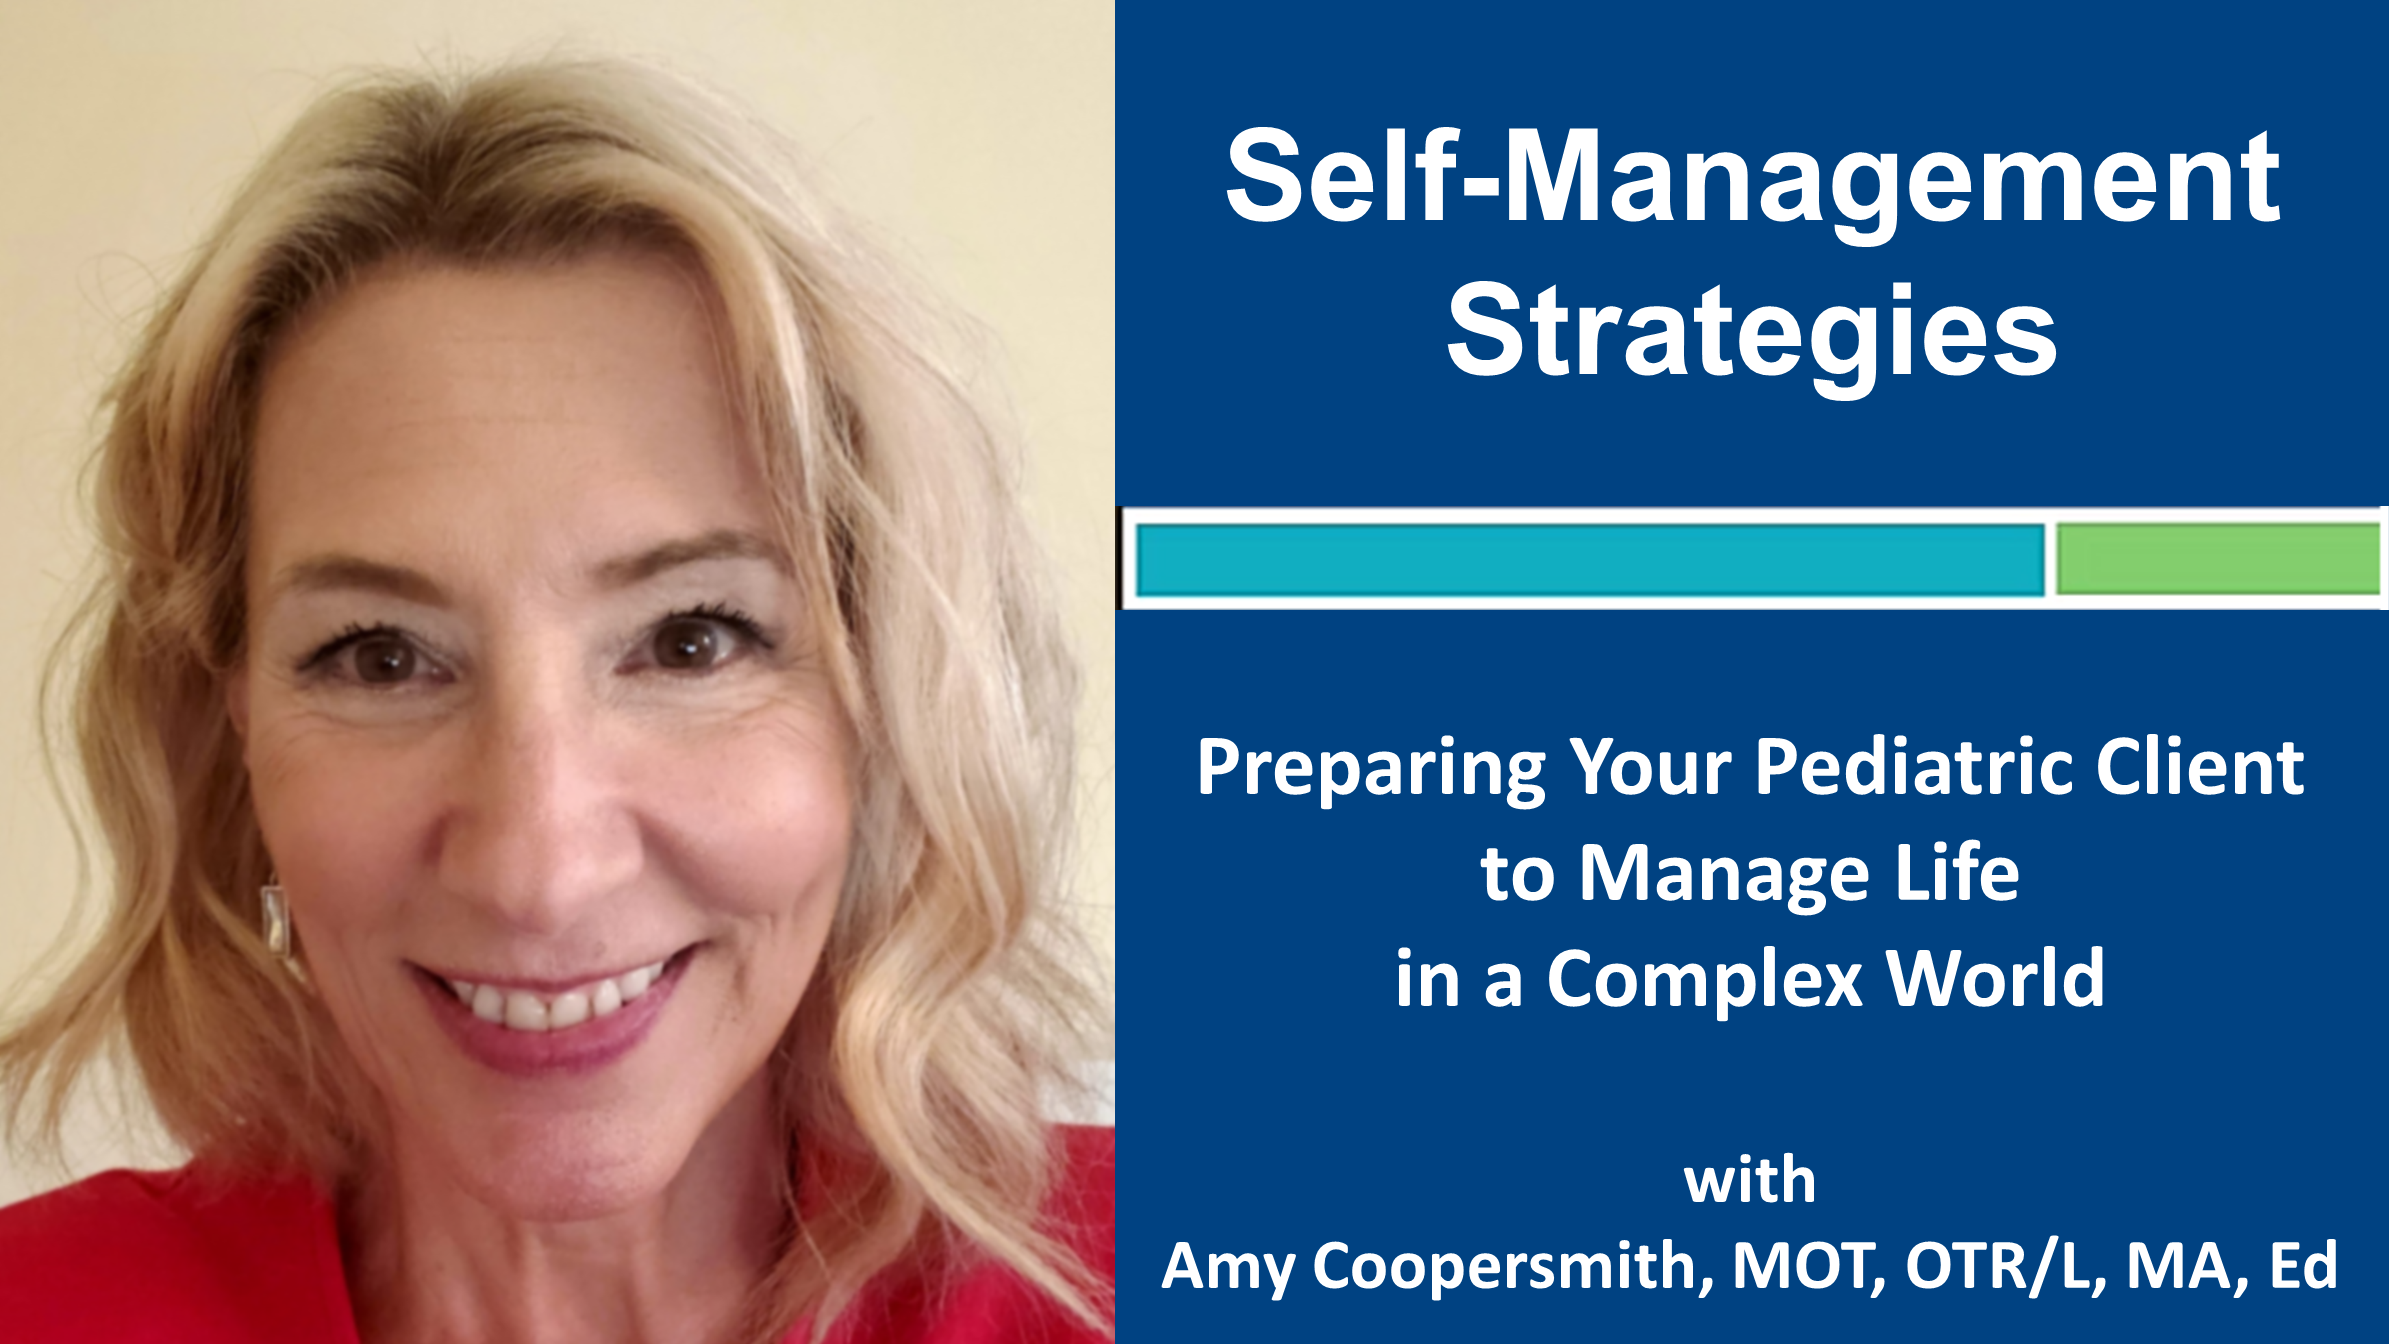 Webinar 3: Self-Management Strategies: Preparing Your Pediatric Client to Manage Life in a Complex World with Amy Coopersmith, MOT, OTR/L, MA, Ed